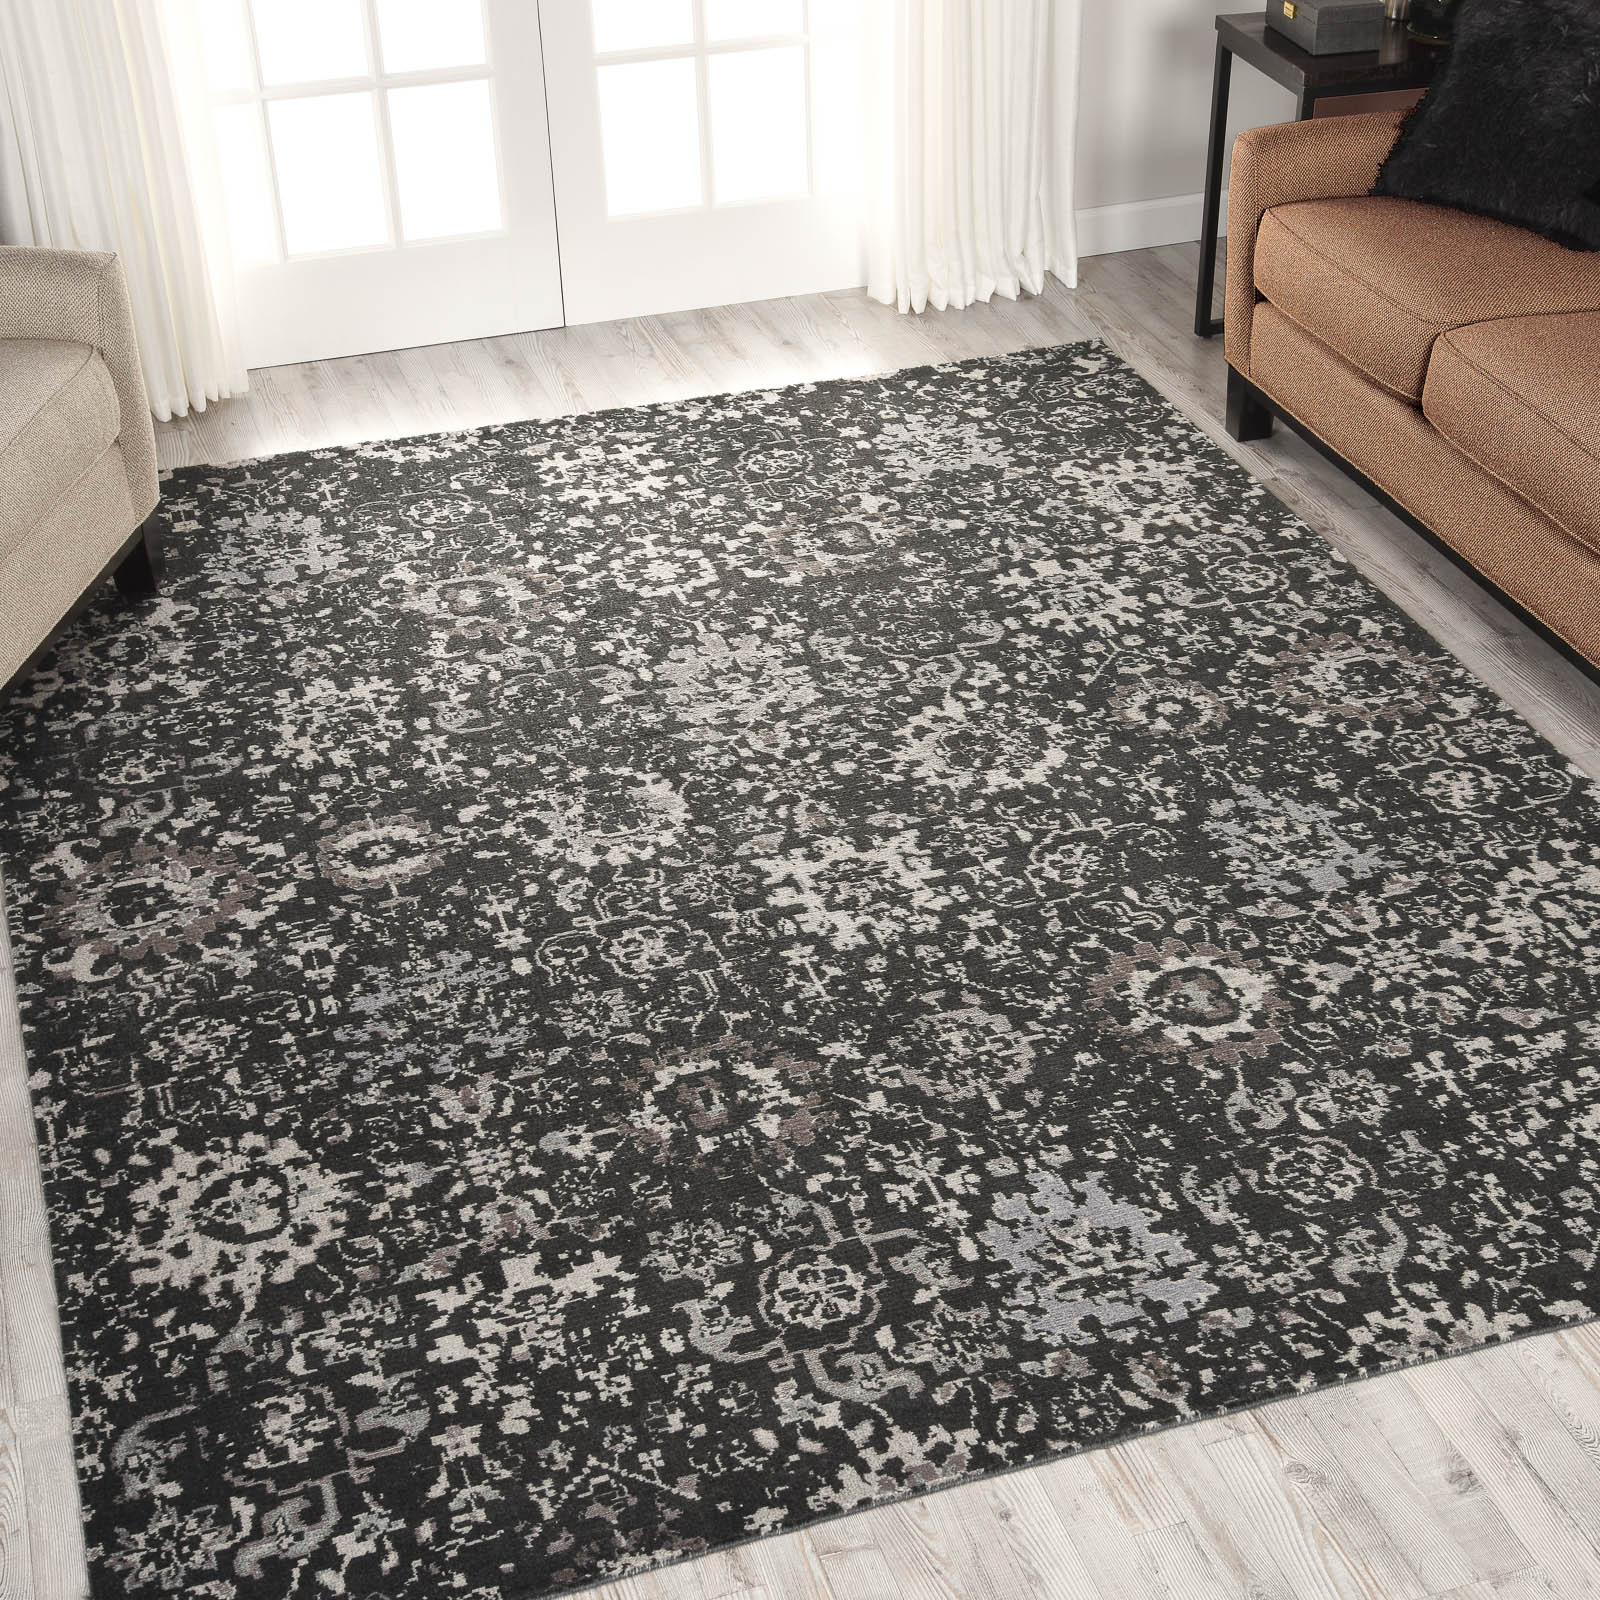 Nourison Twilight Rugs TWI13 in Onyx